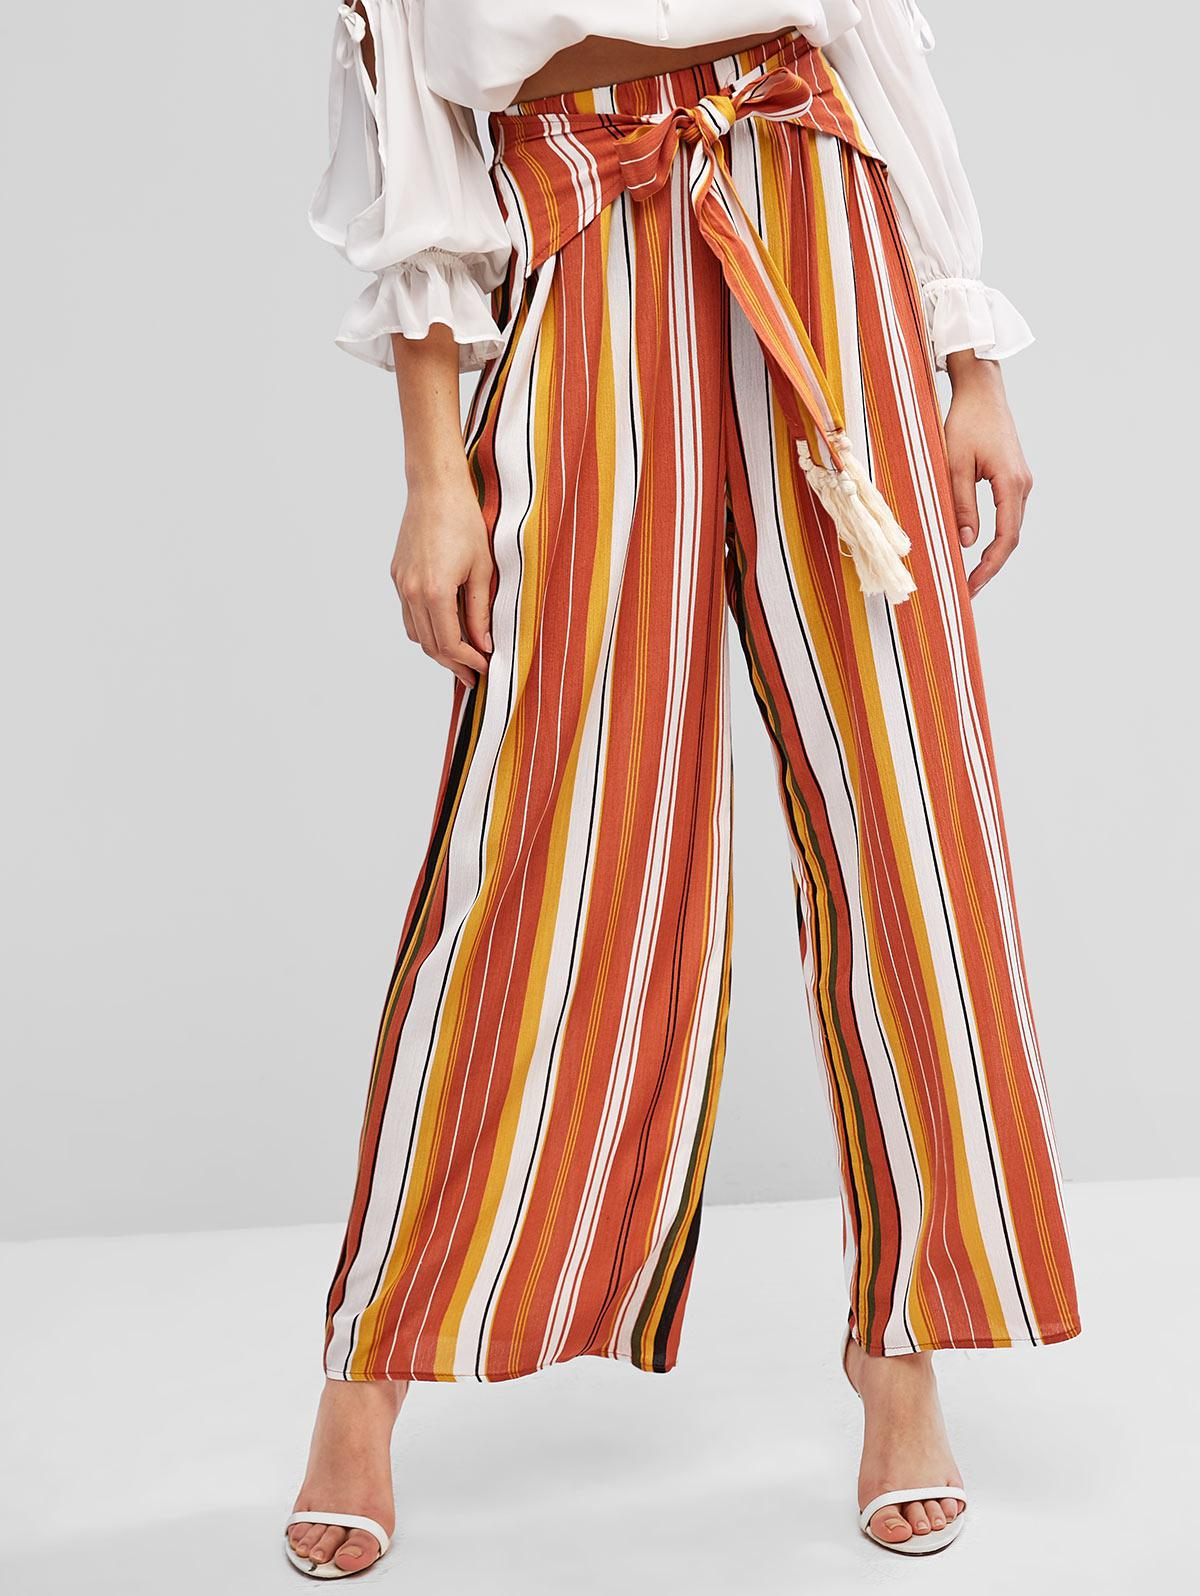 Tie Waist Stripes Tassels Wide Leg Pants